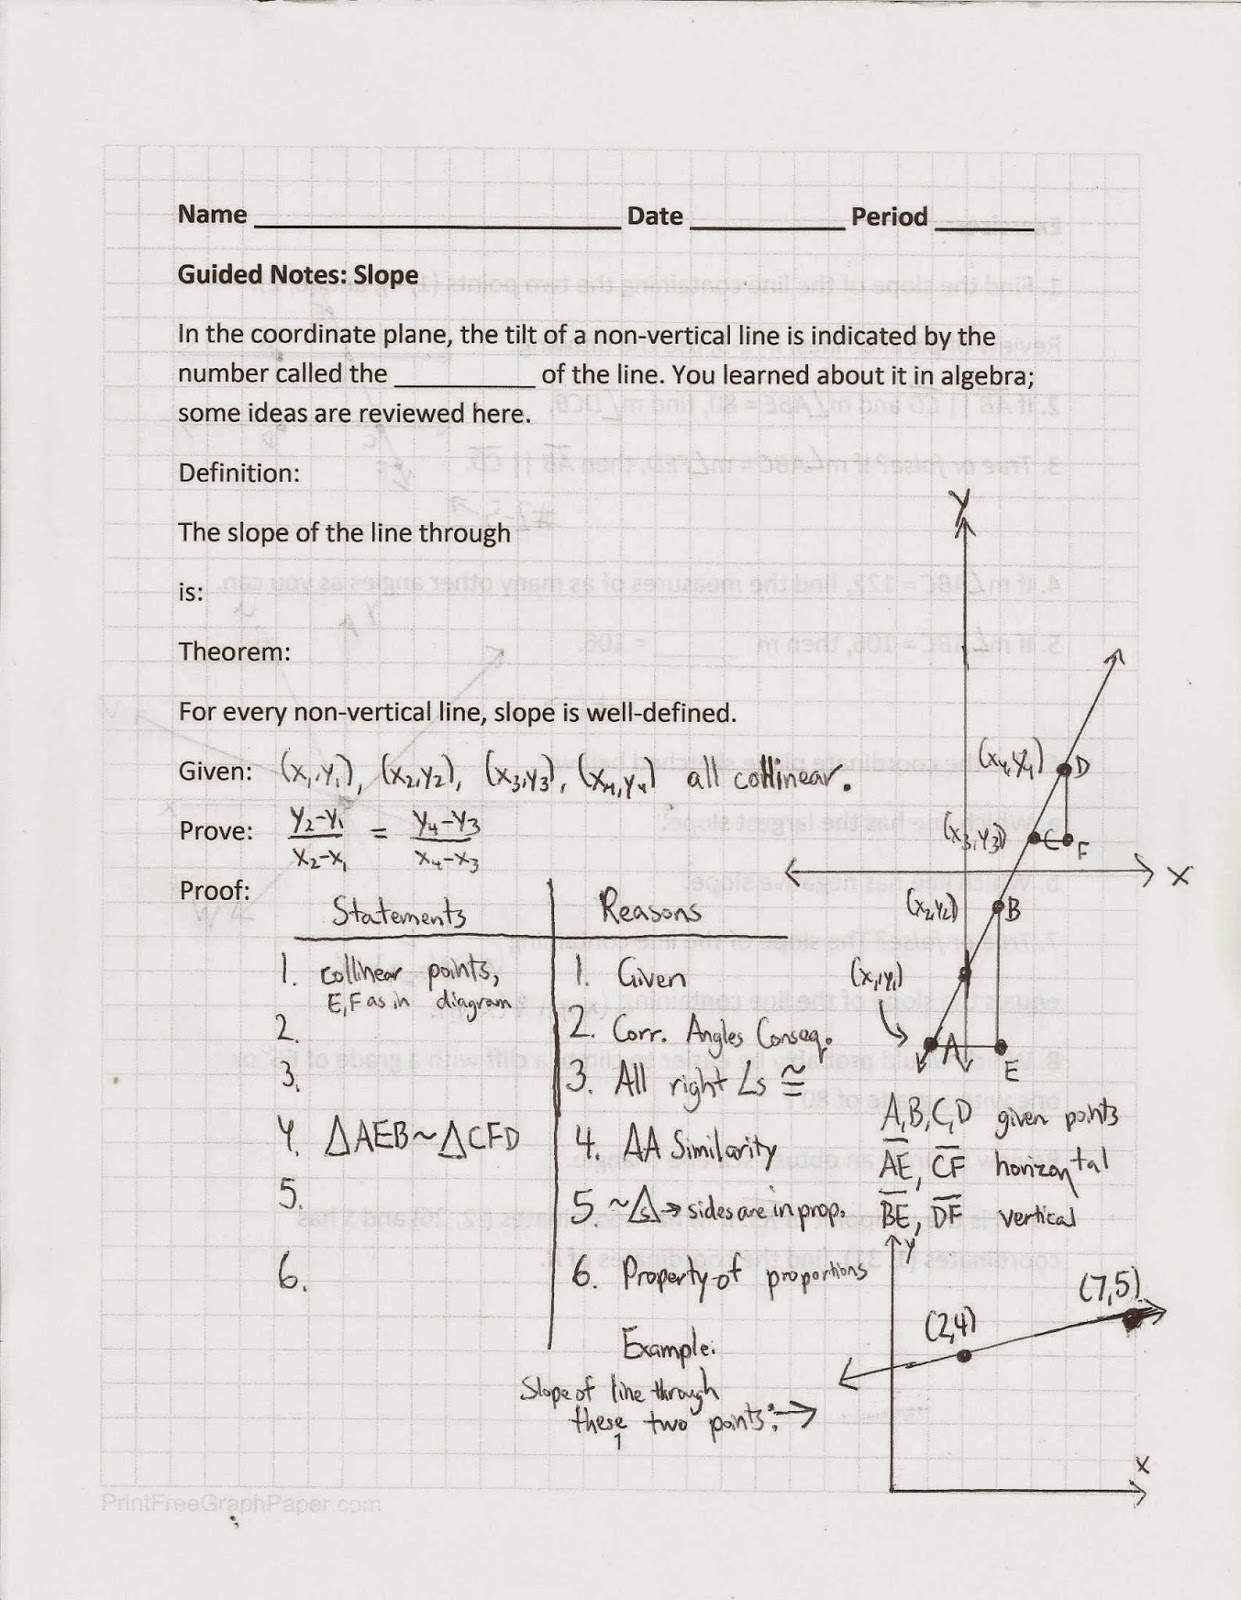 Printables Activity Worksheet Distance And Midpoint Exploration Answers geometry common core style january 2015 the trick for doing this will remind us of proof distance formula